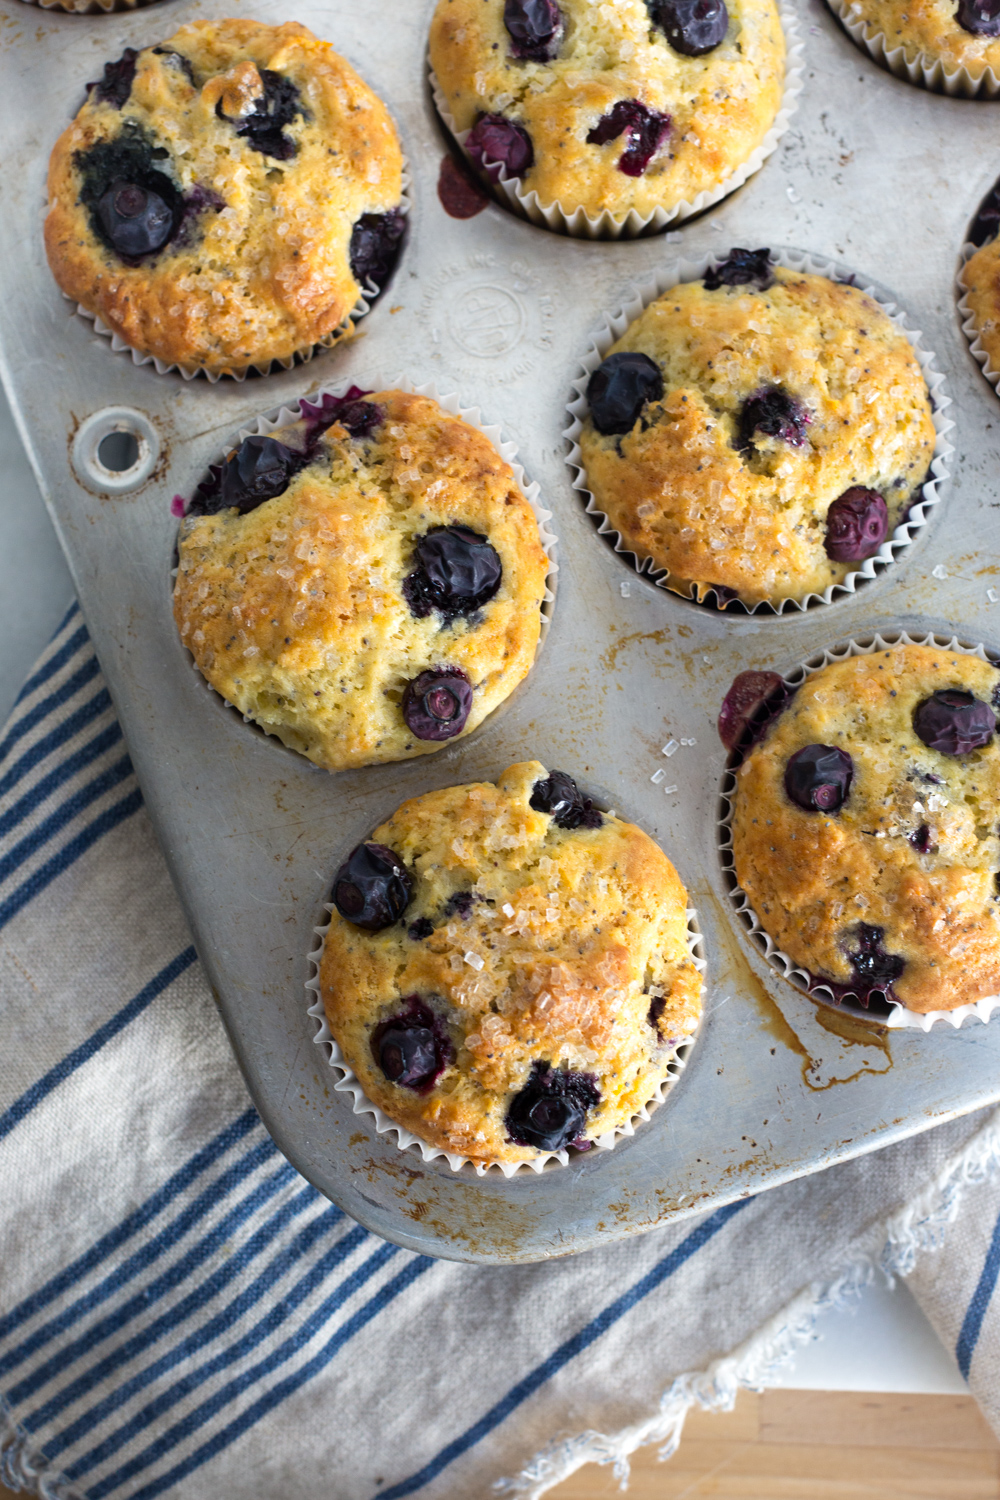 Blueberry Lemon Poppy Seed Muffins fresh from the oven.